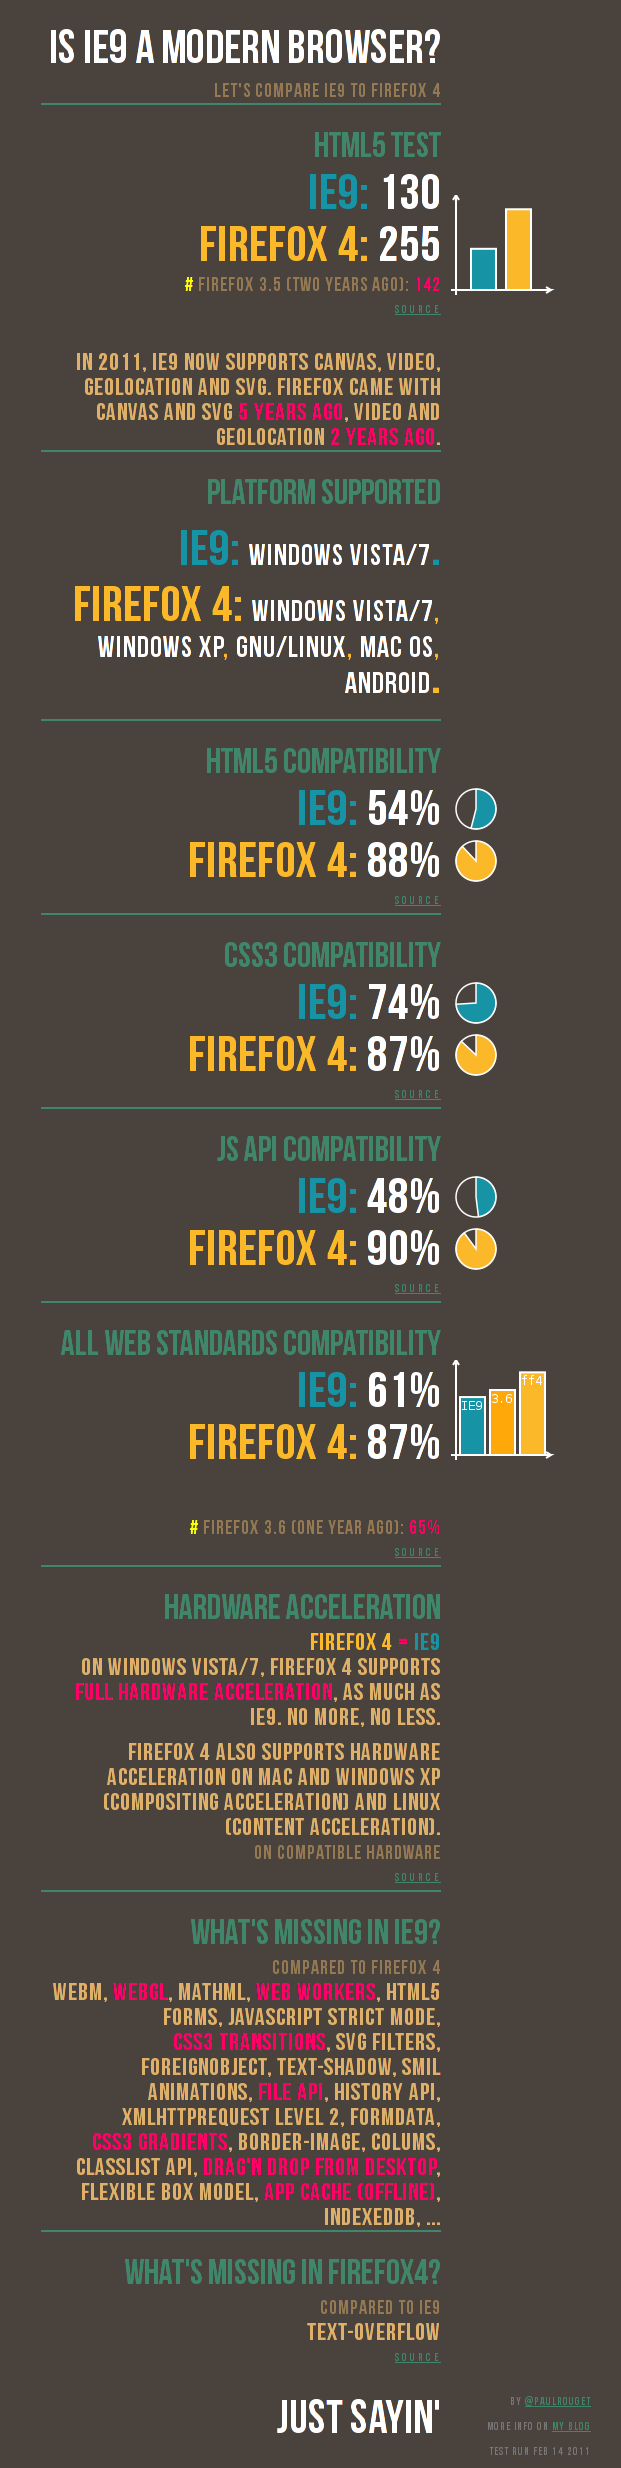 IE9 vs Firefox 4